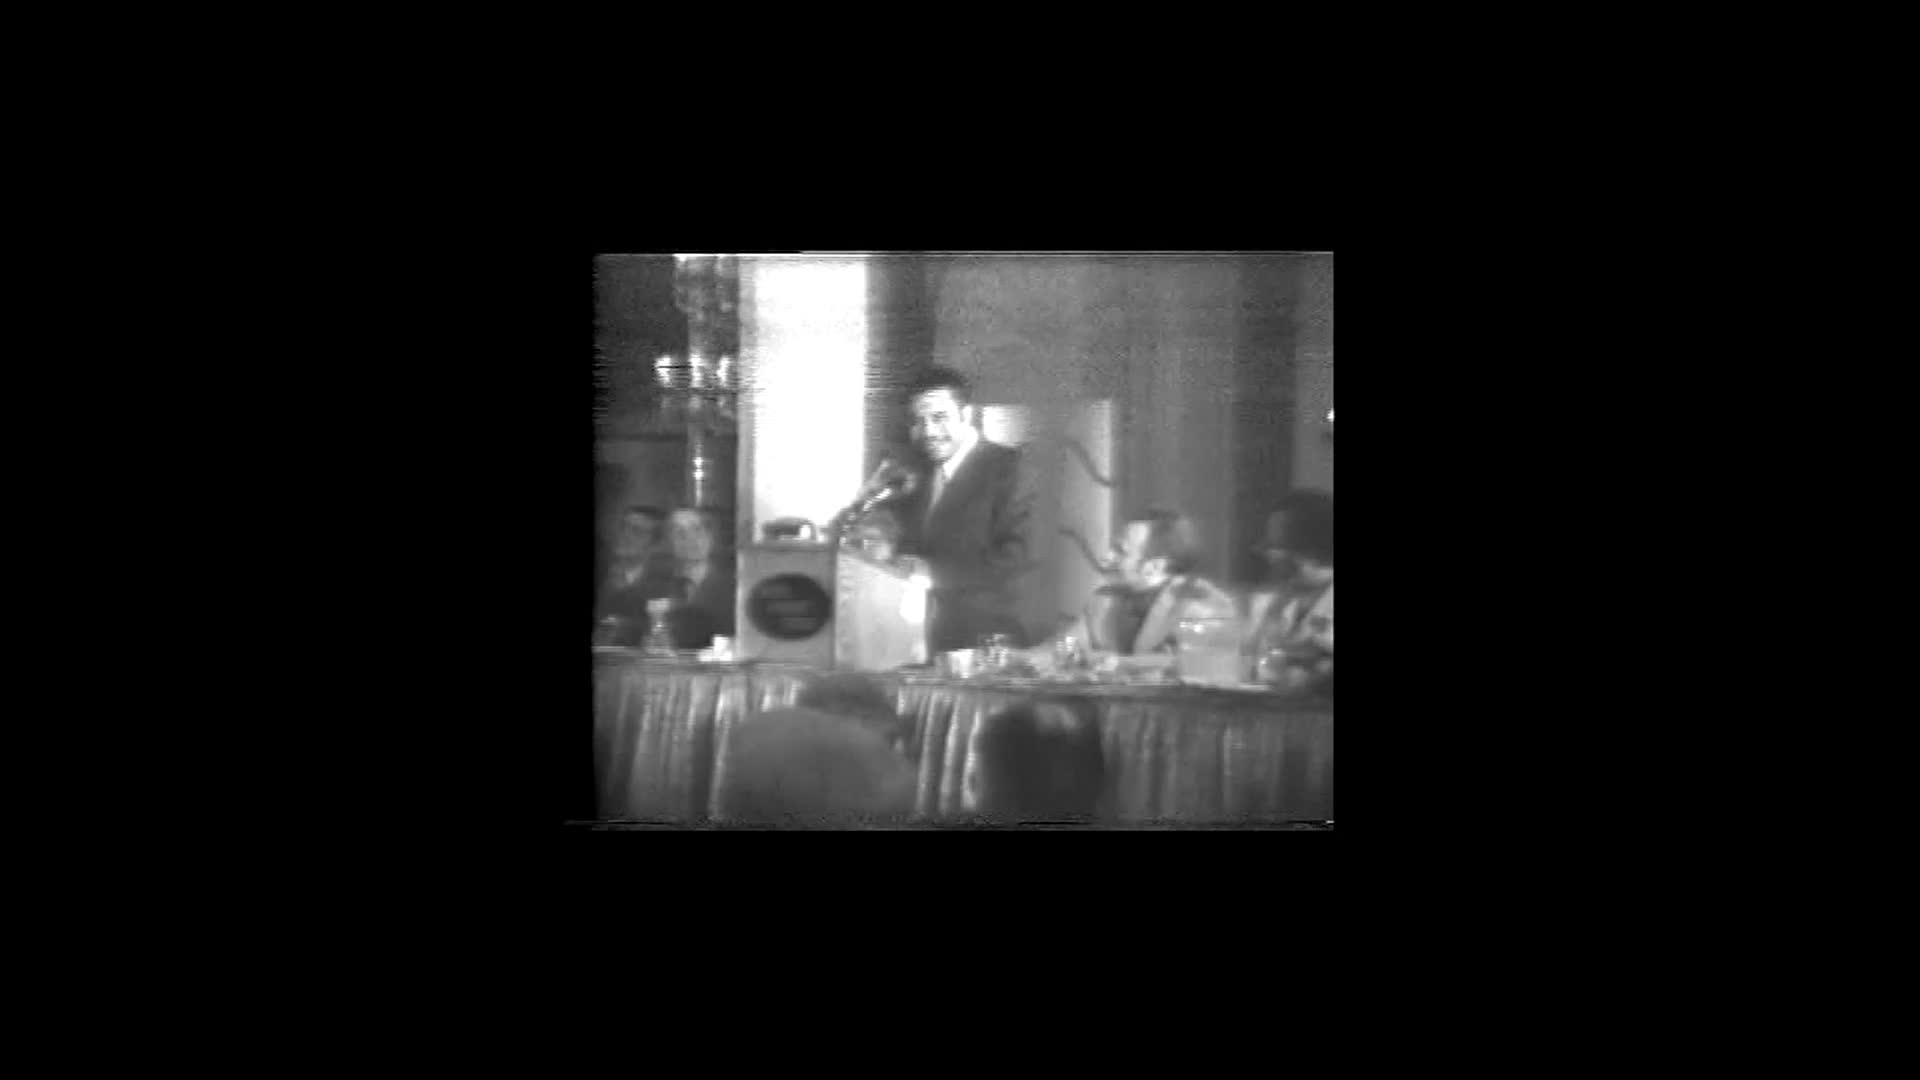 "'Cities in Crisis,"" Speech Made by Mayor Kenneth Gibson at the New Jersey Library Association Conference in Newark, NJ, in 1974"